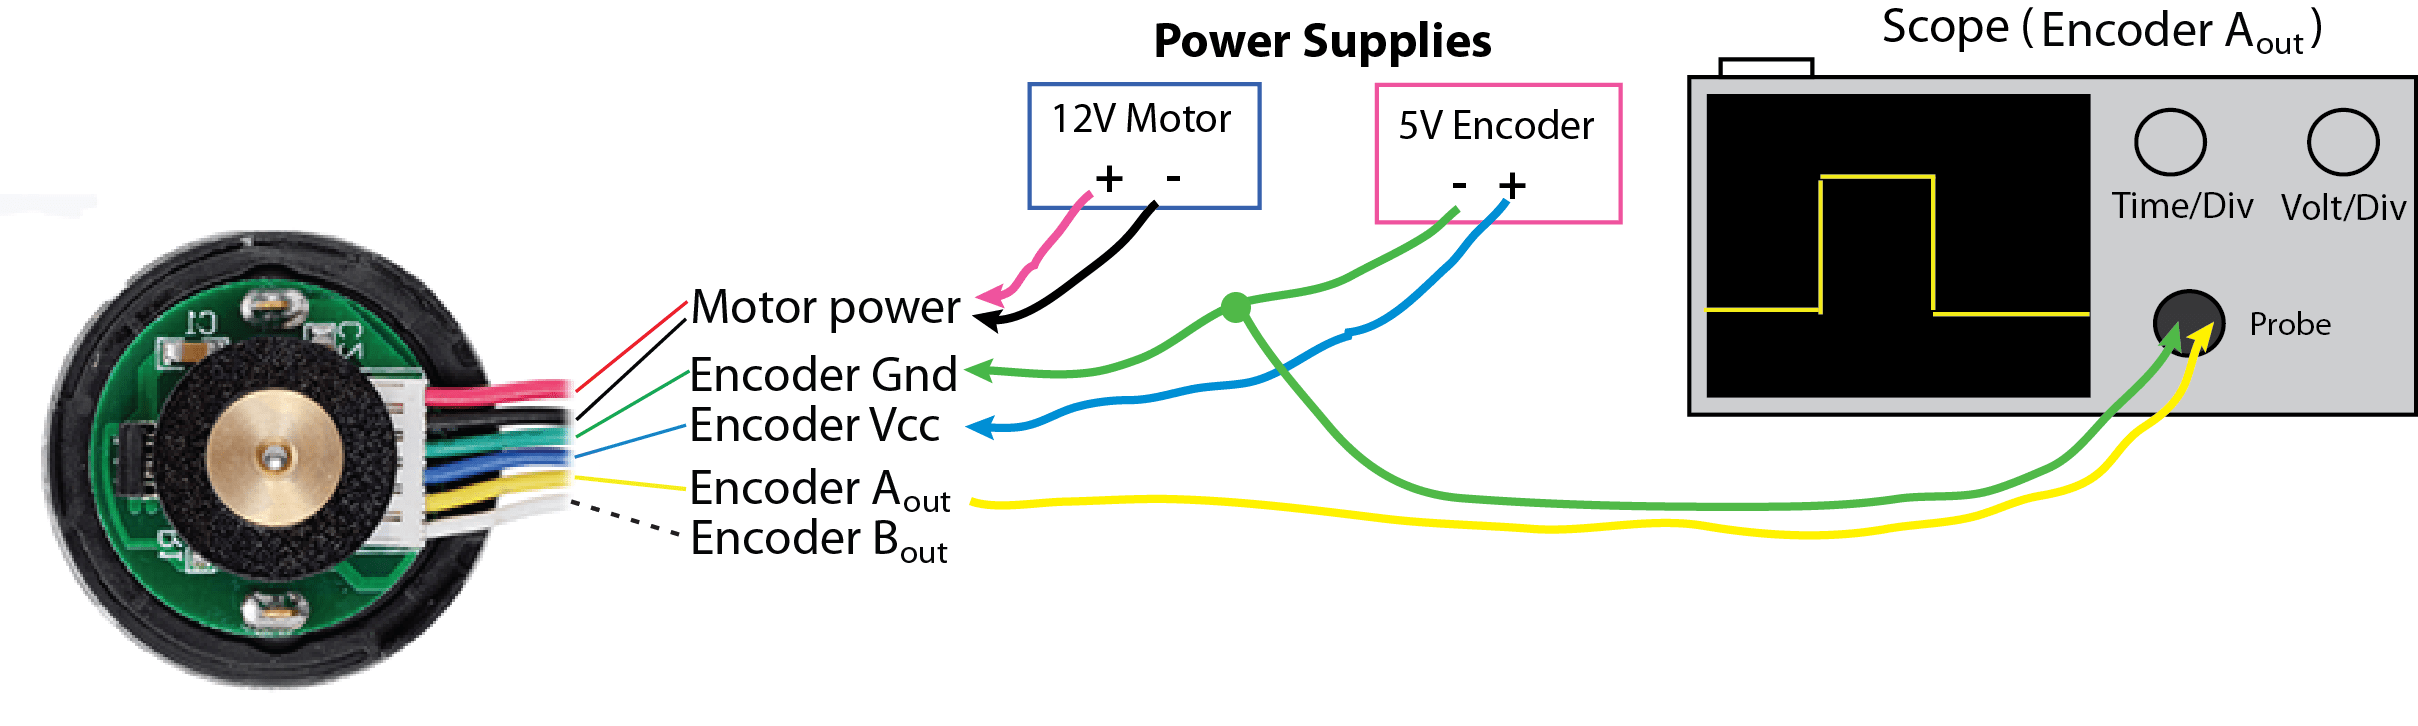 encoder wiring diagram solenoid 86 ford f150 dc motor get free image about